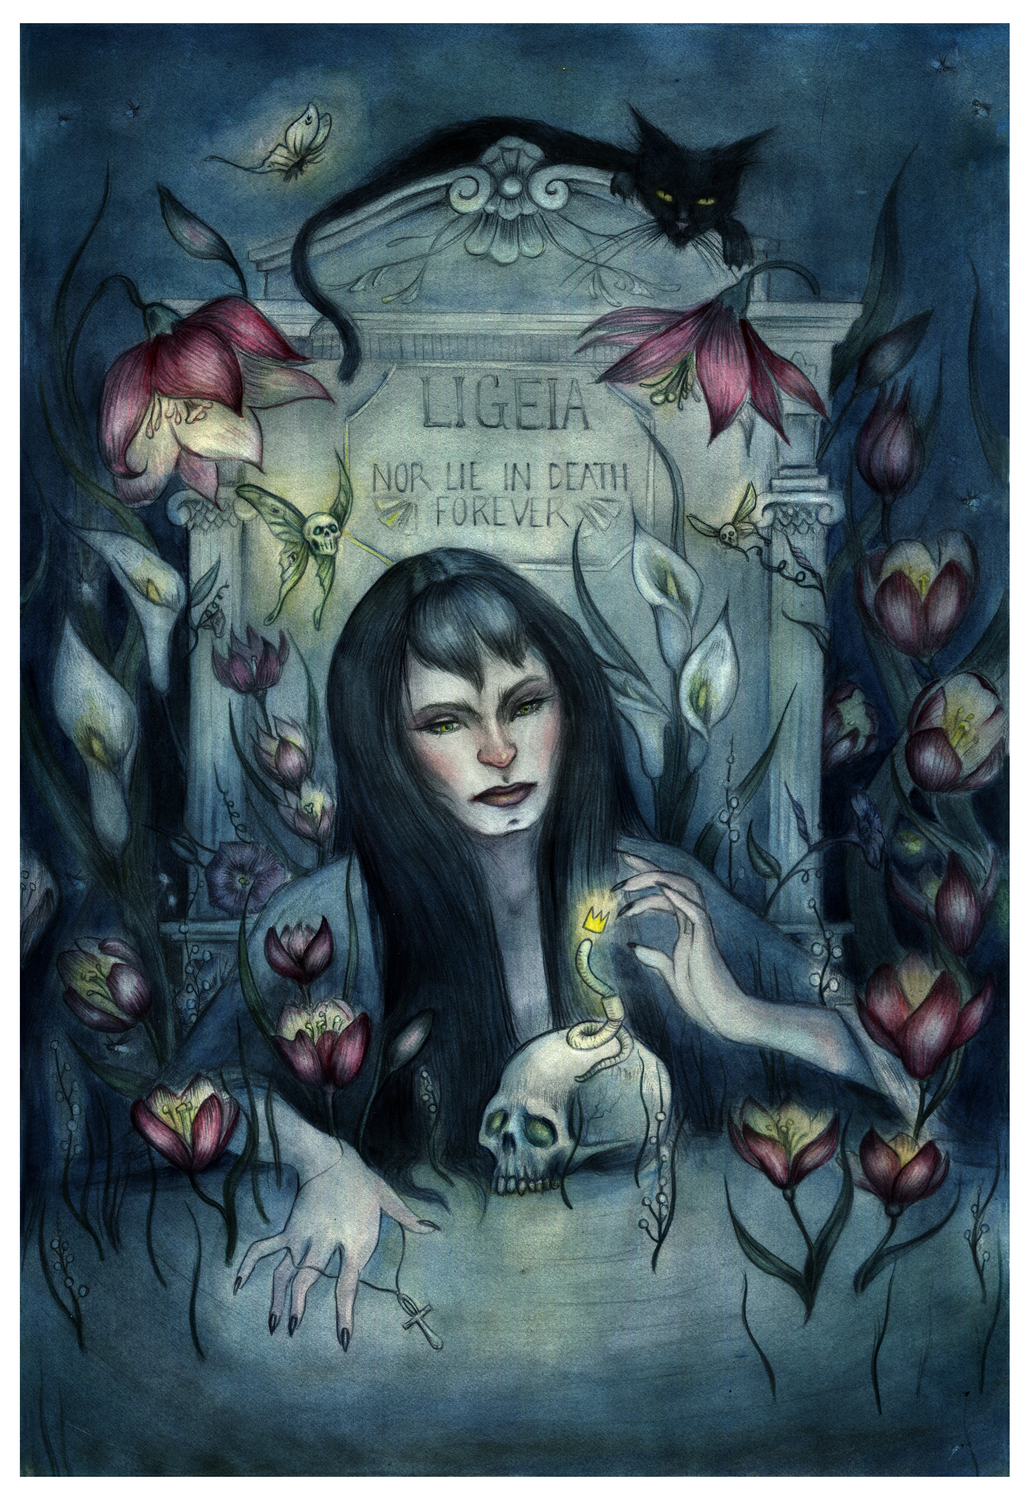 Ligeia and the conqueror worm Artwork by tanya finder